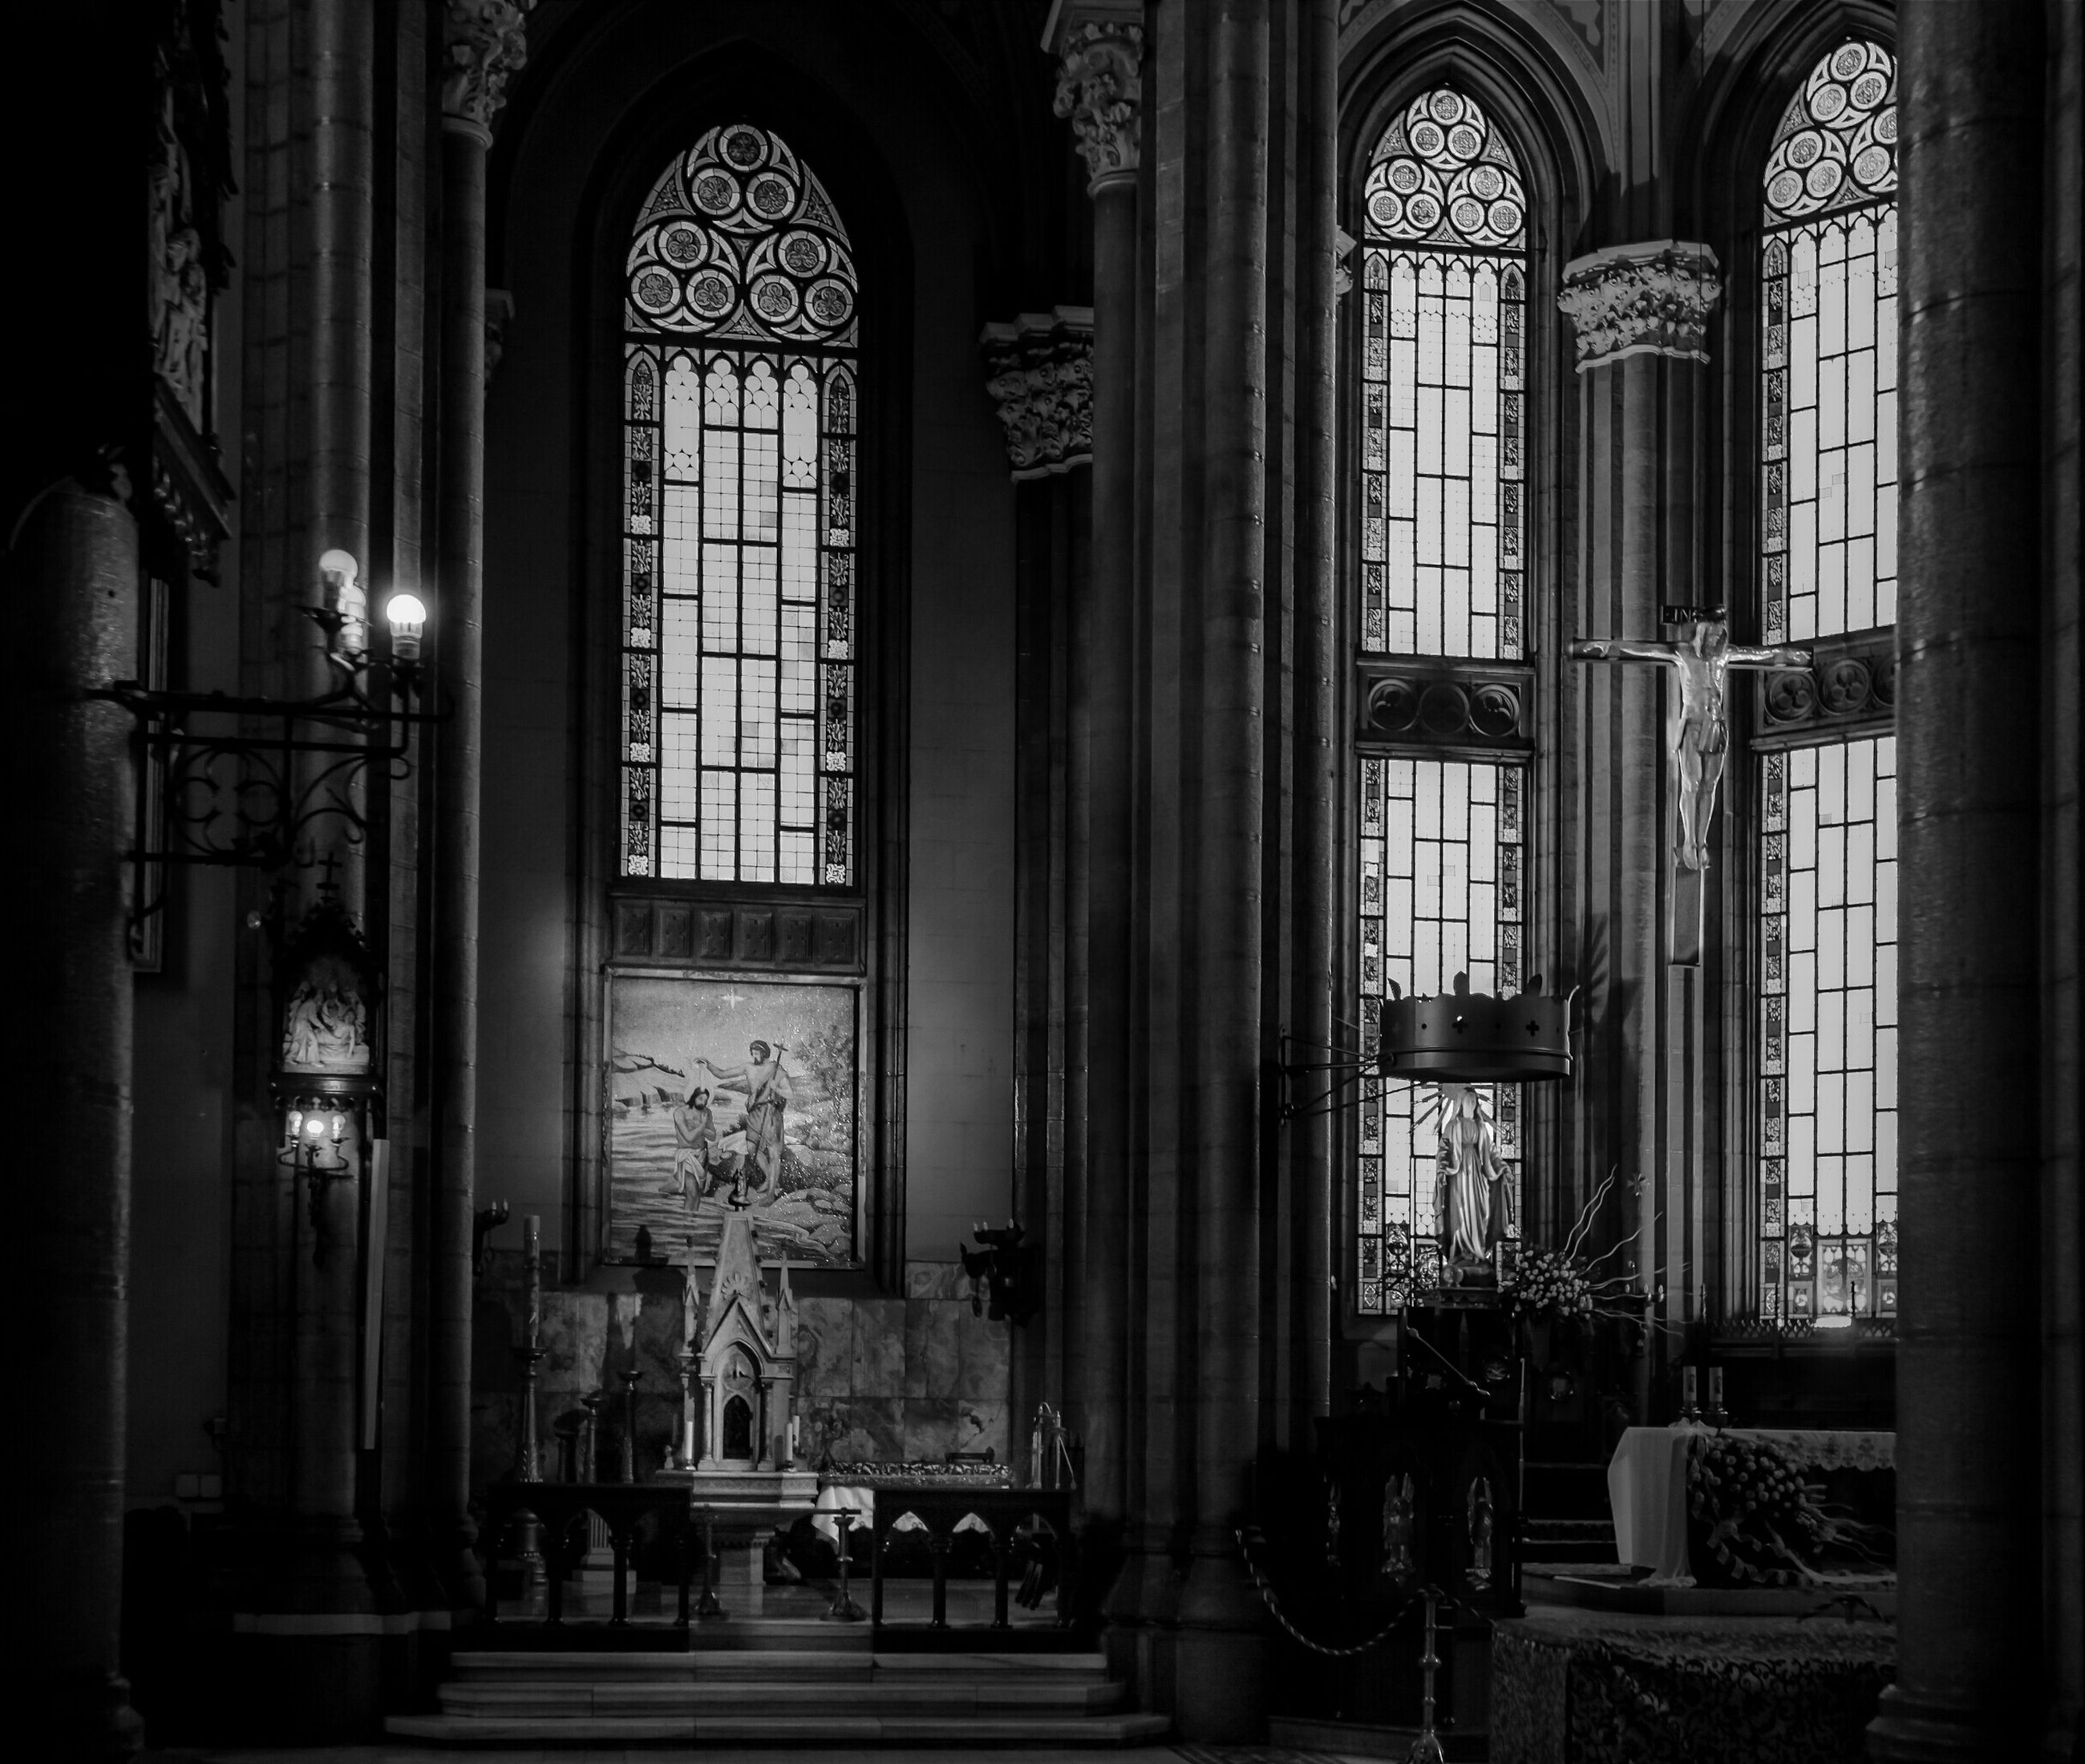 indoors, place of worship, religion, church, spirituality, arch, architecture, window, built structure, door, entrance, cathedral, interior, illuminated, incidental people, glass - material, day, ornate